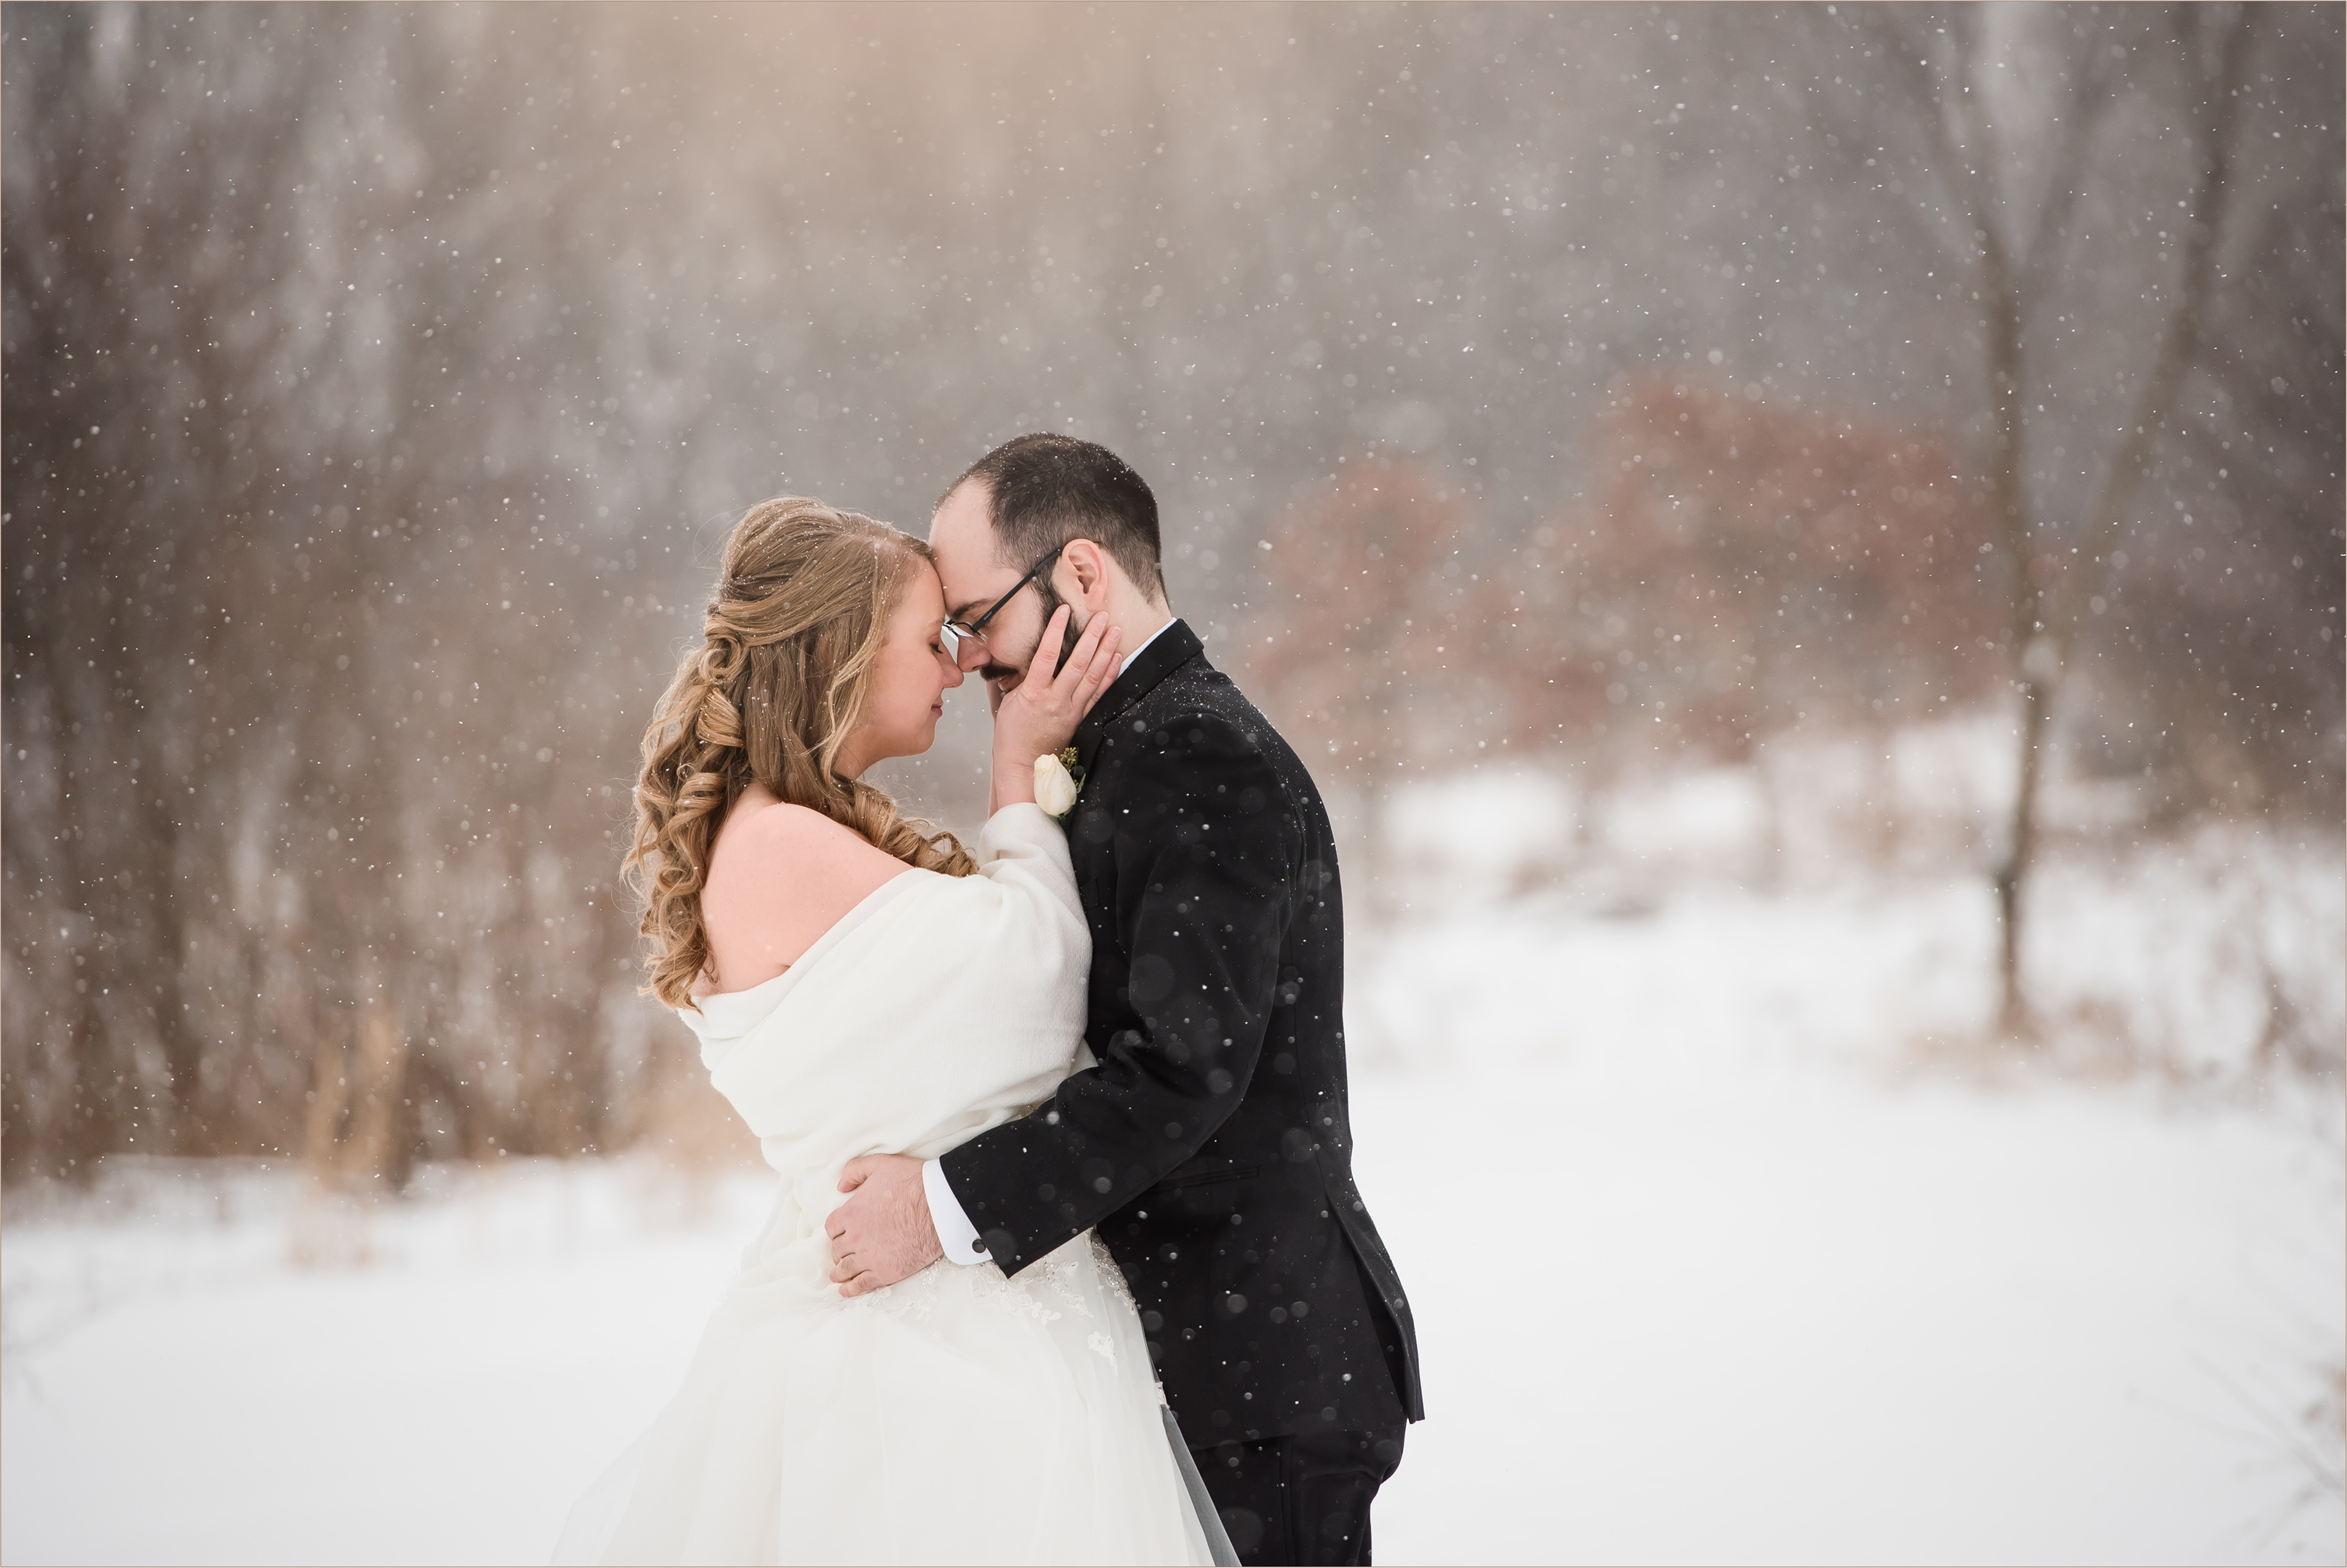 Winter wedding in Illinois with snow falling